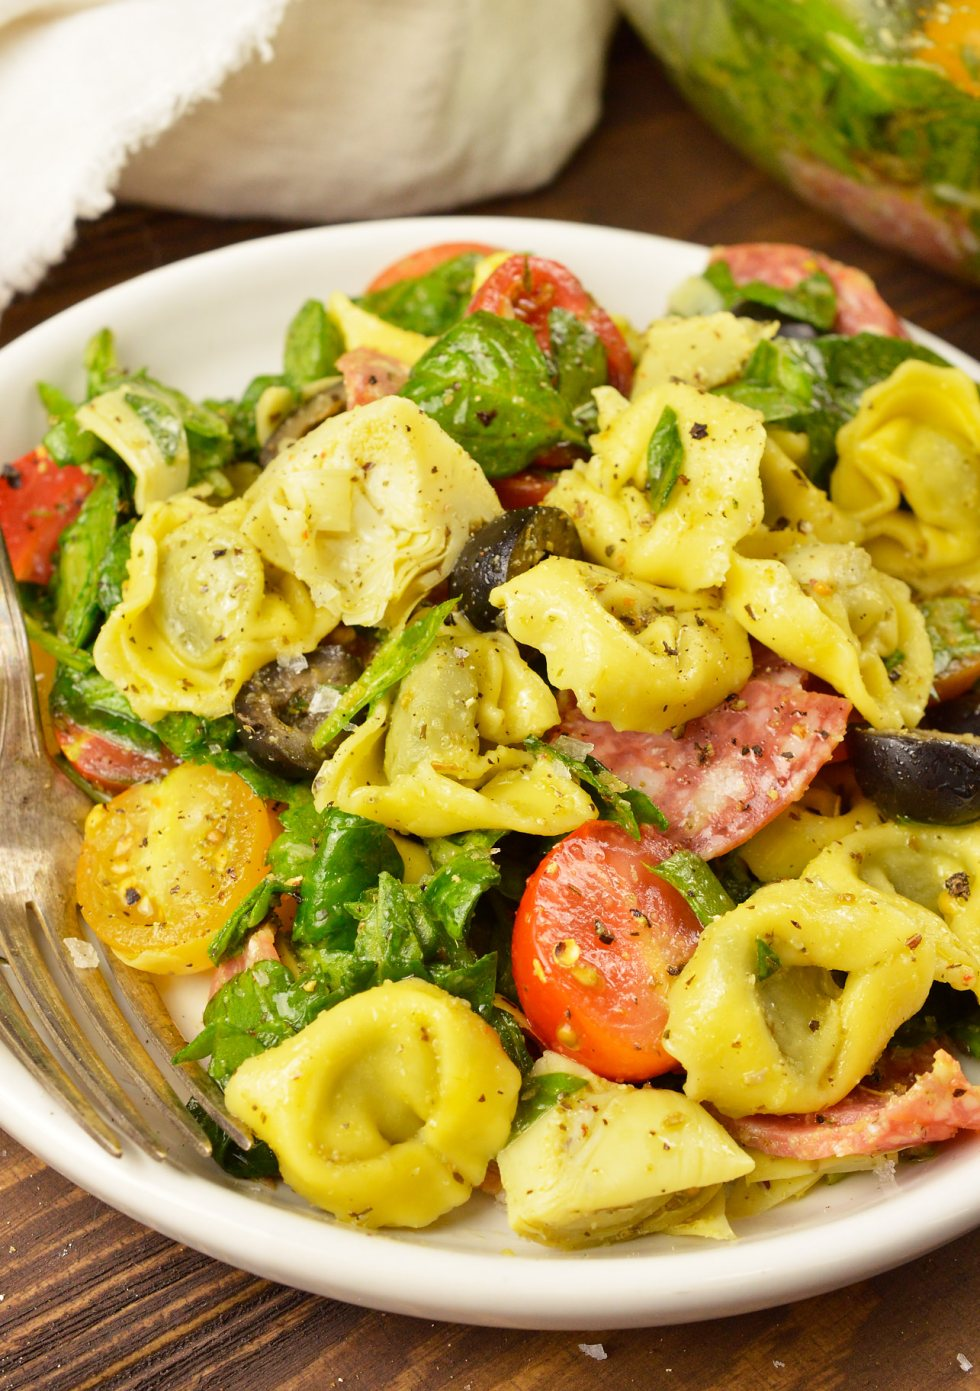 Prepare to be obsessed! This Spinach Tortellini Italian Pasta Salad Recipe is bursting with color, flavor and is nutritious. A perfect blend of fresh spinach, tomatoes, olives, artichokes, salami and tortellini tossed with an Italian dressing. This side dish can be served hot or cold and be prepared ahead of time. #pasta